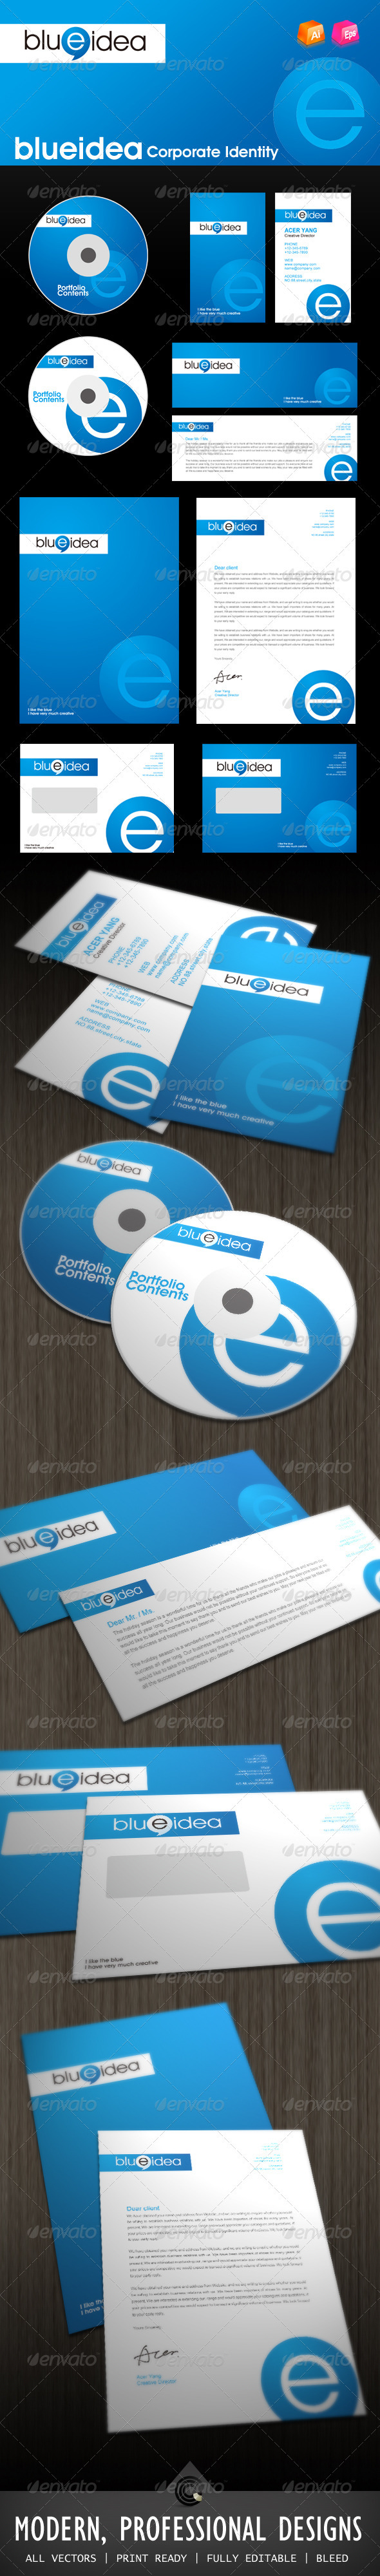 Blue Idea Corporate Identity - Stationery Print Templates